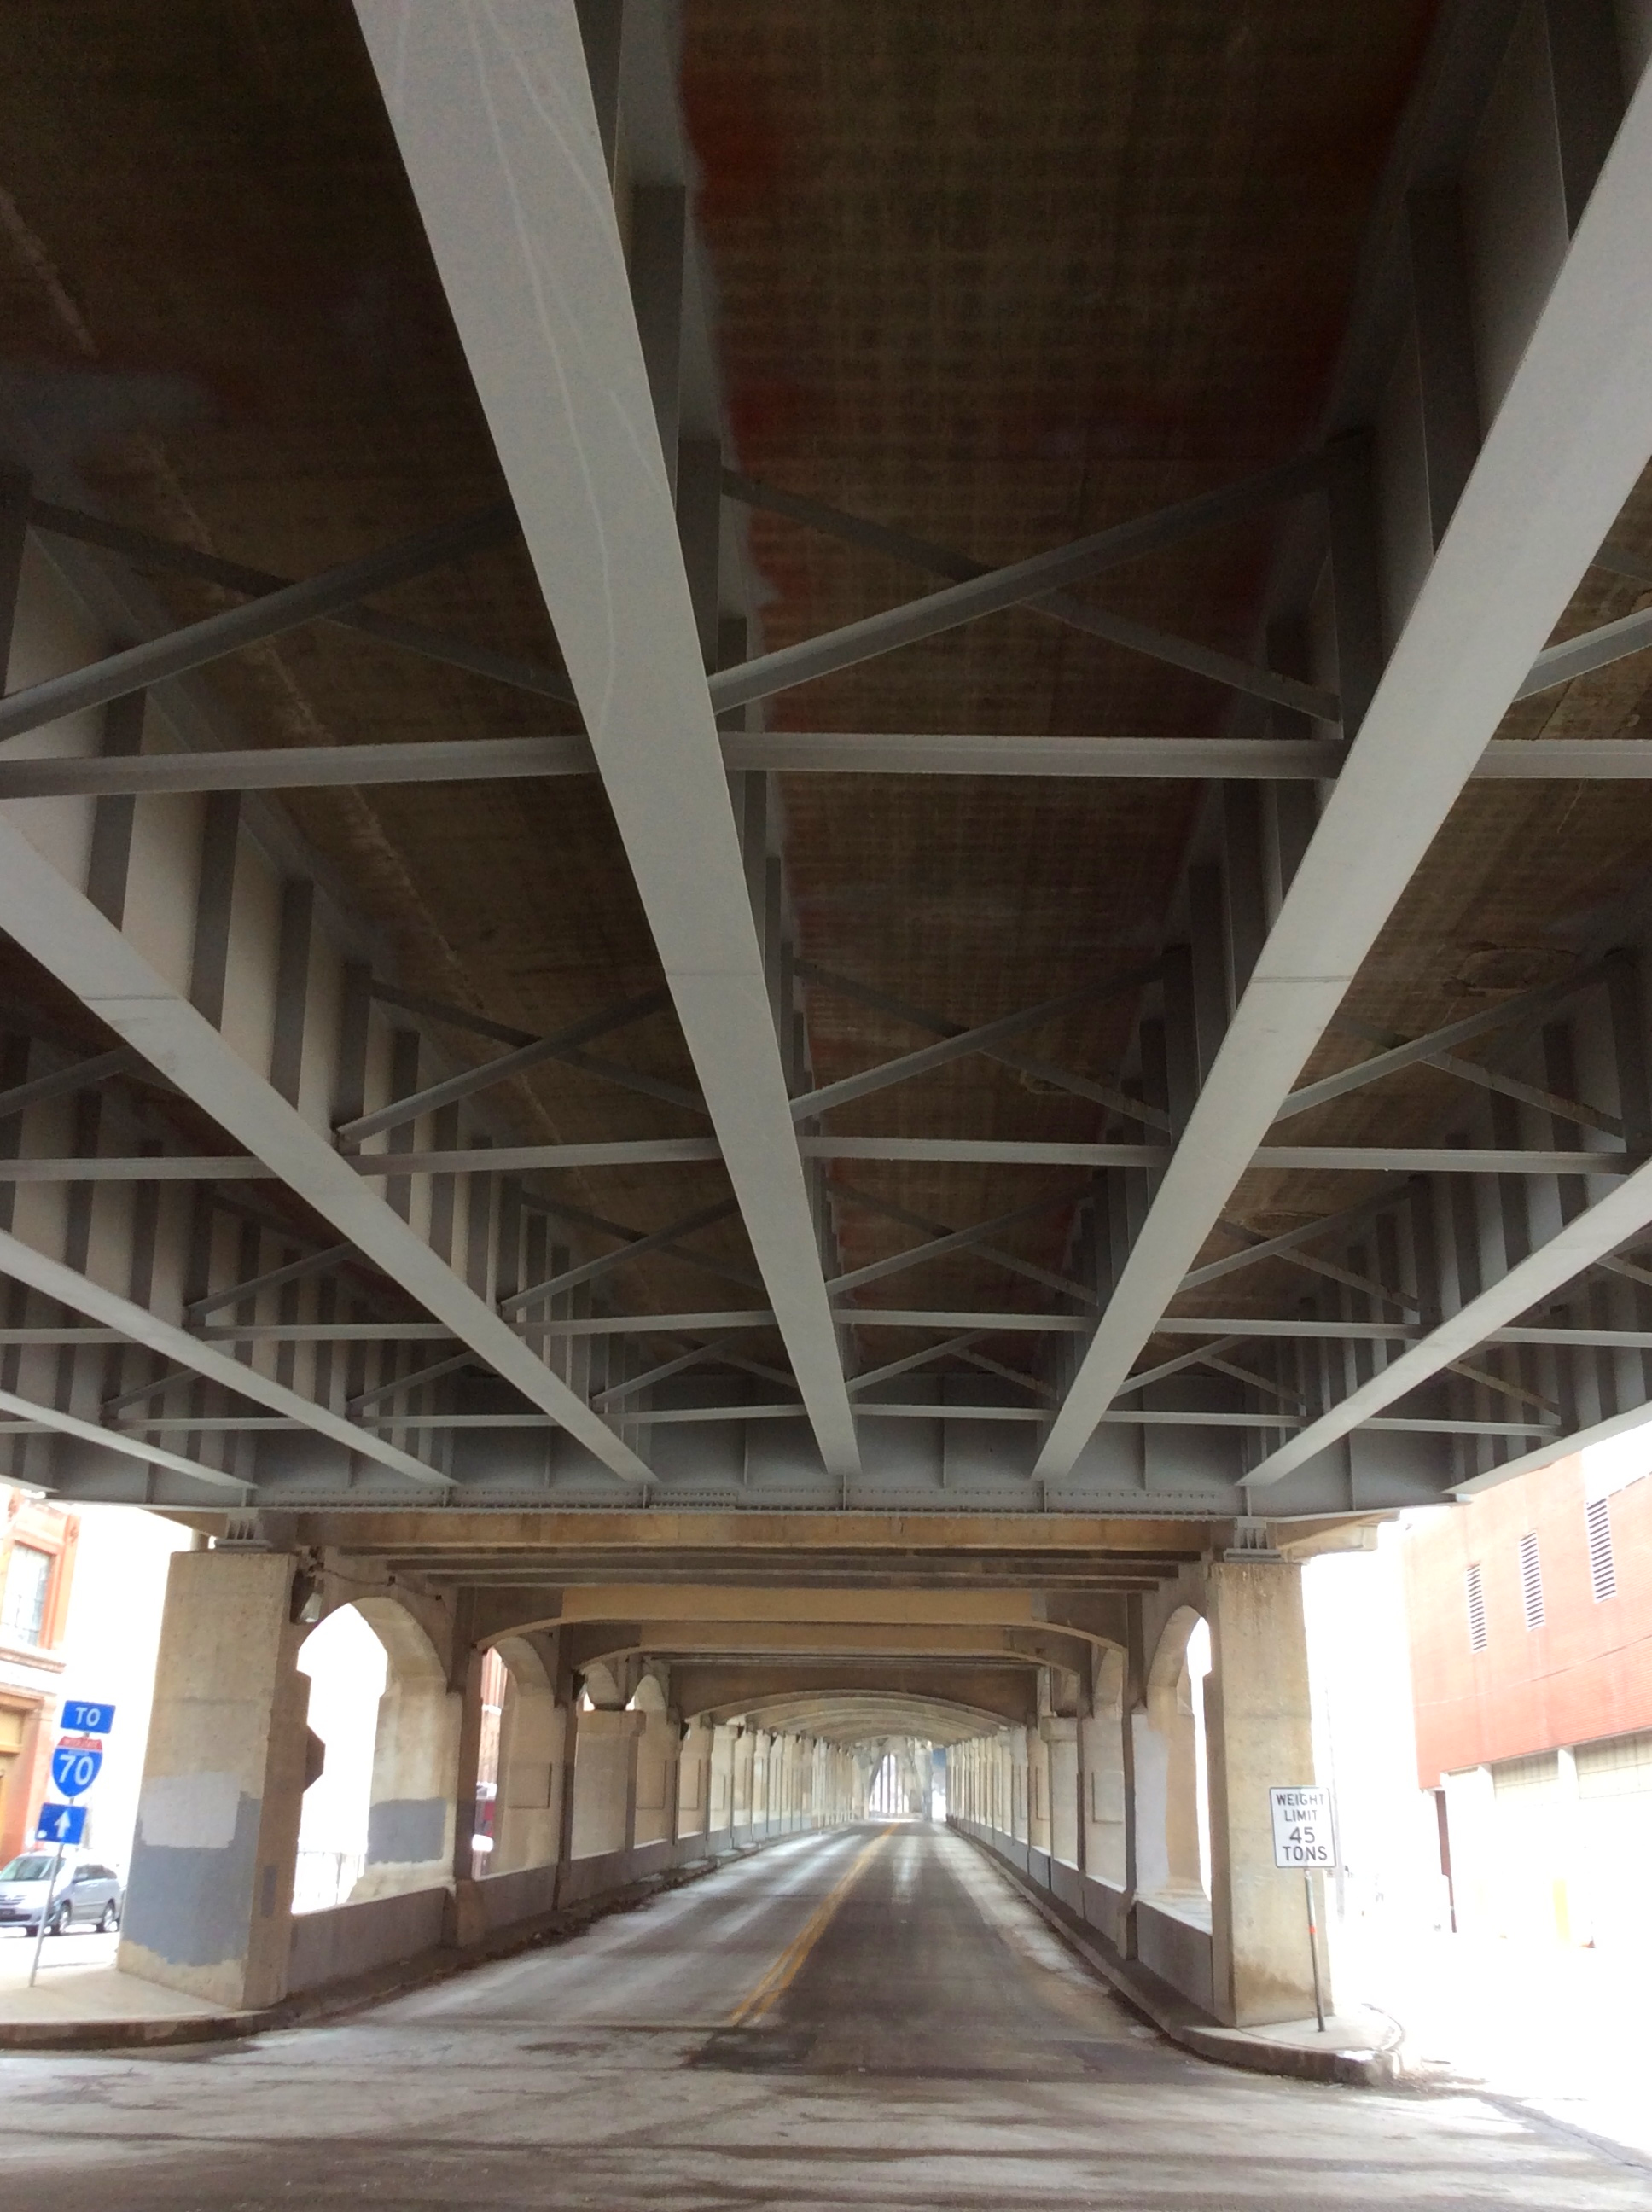 Underpass in the West Bottoms of Kansas City